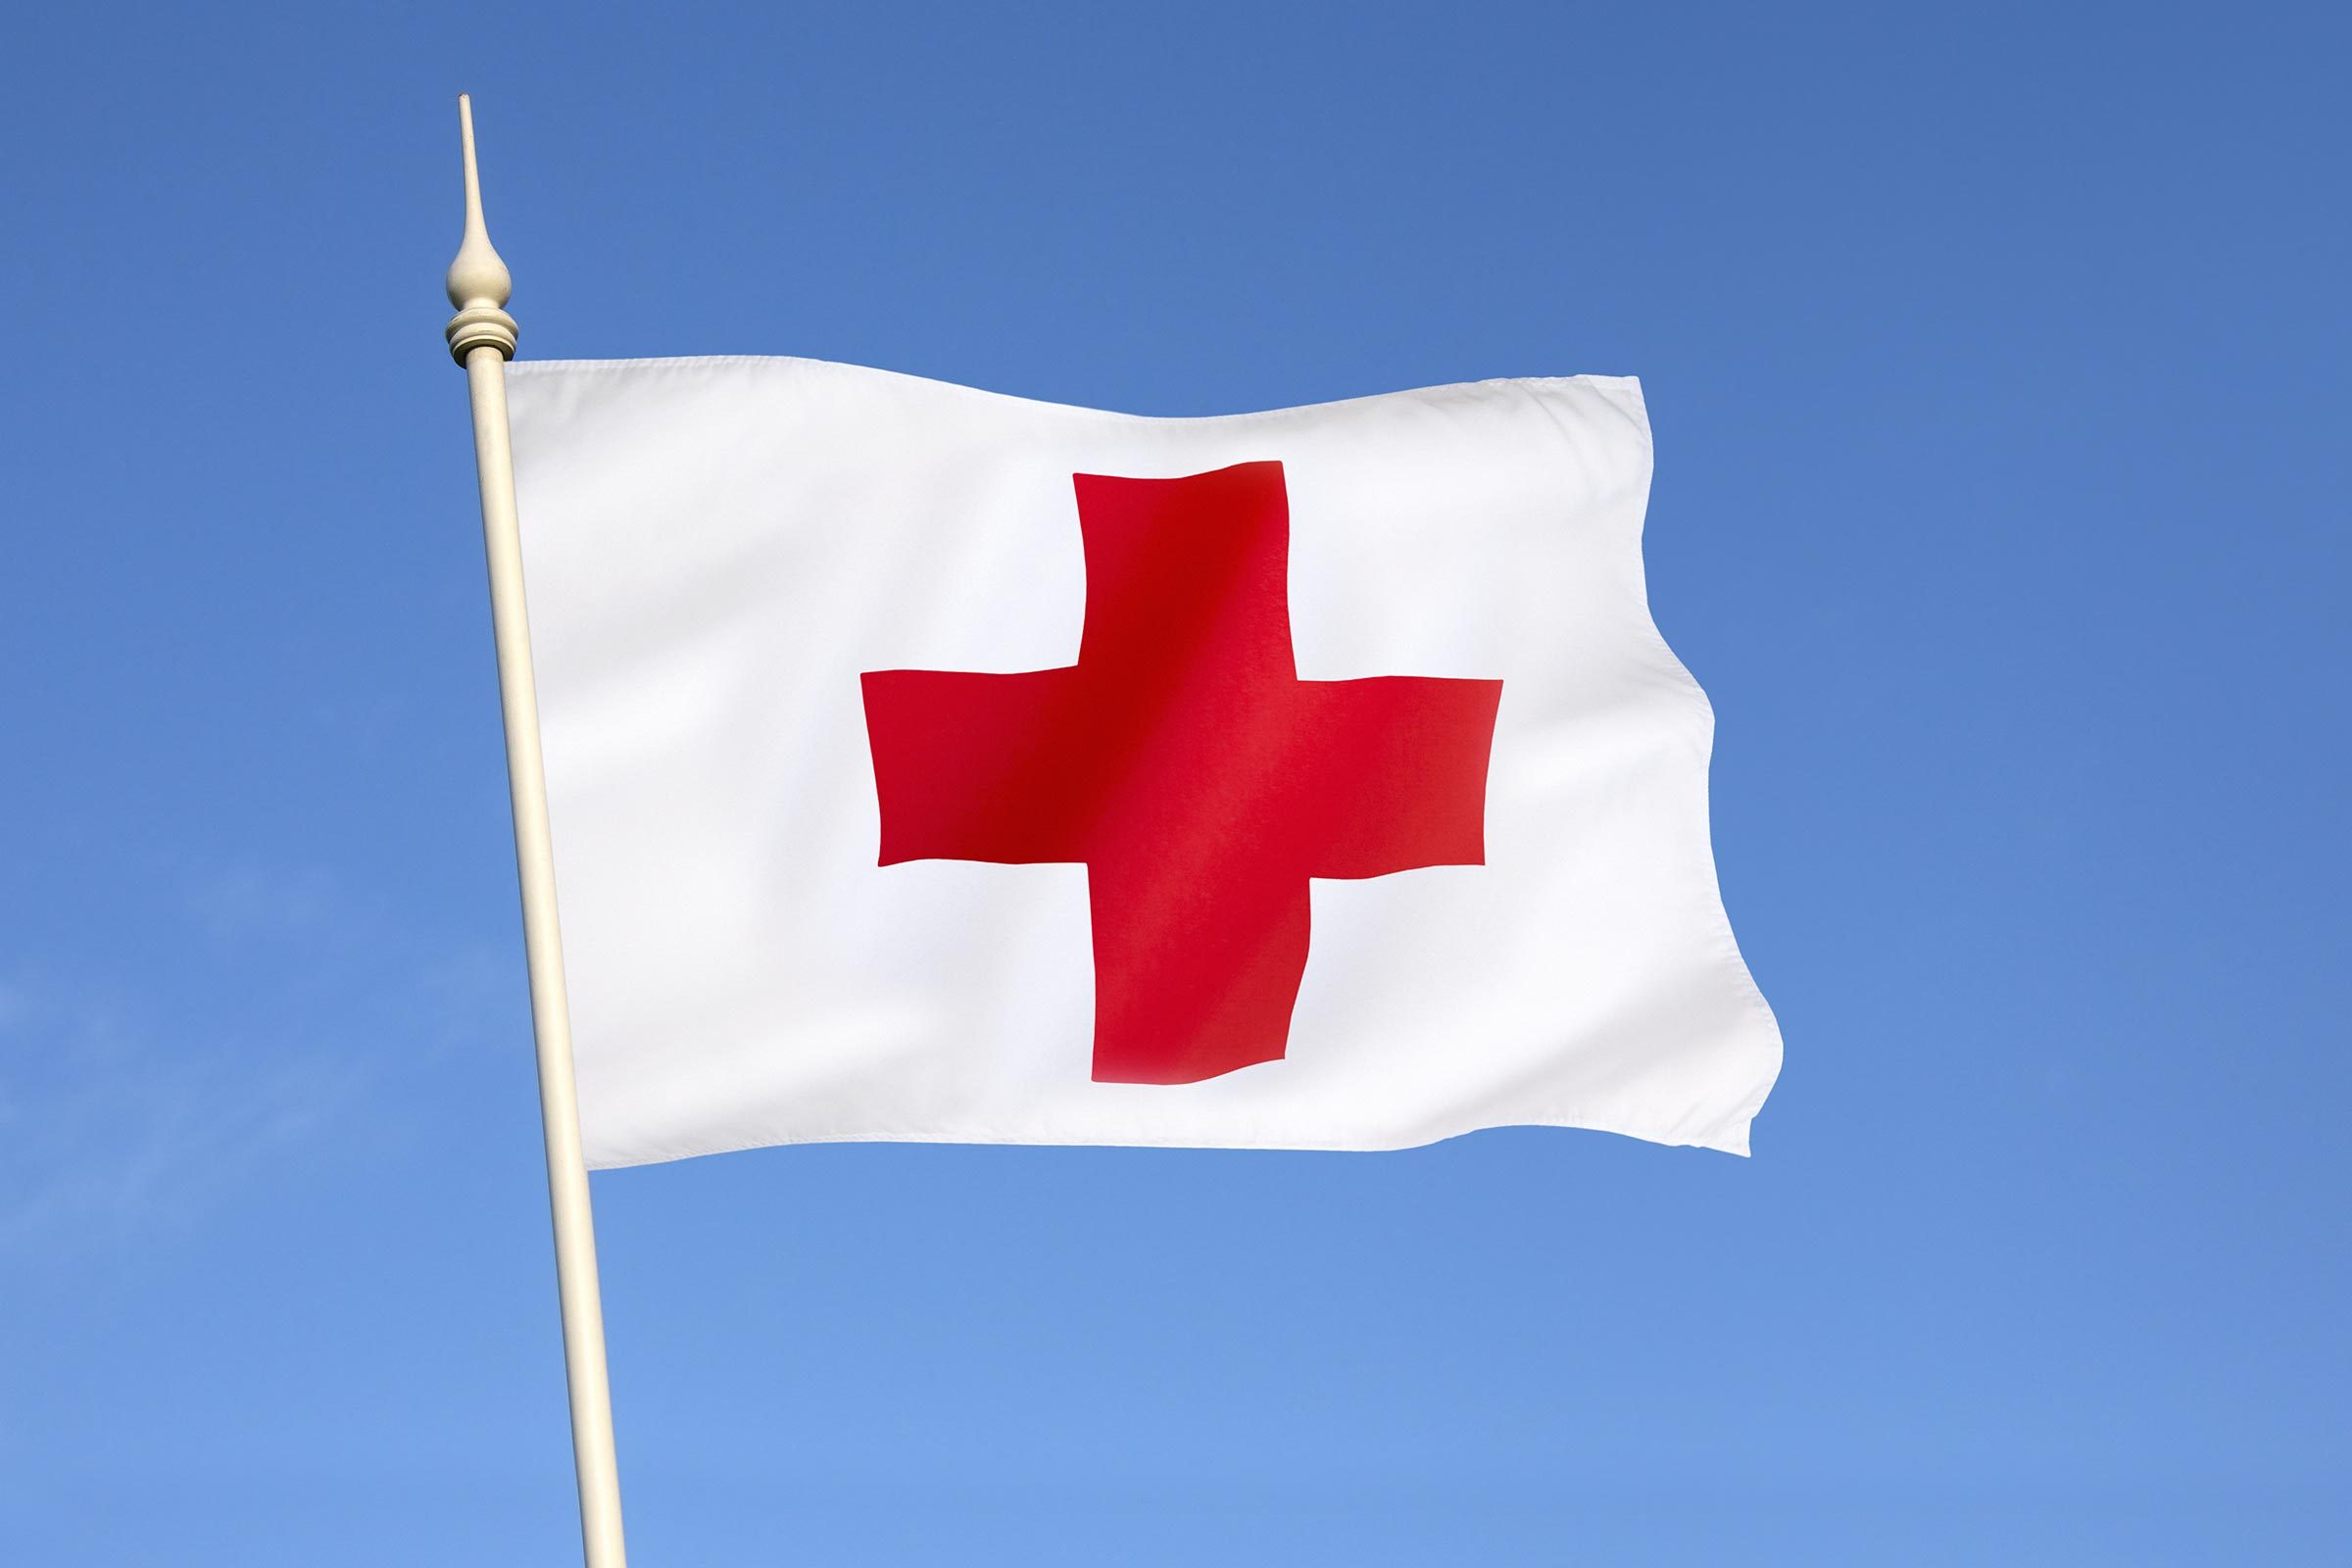 Flag of the Red Cross